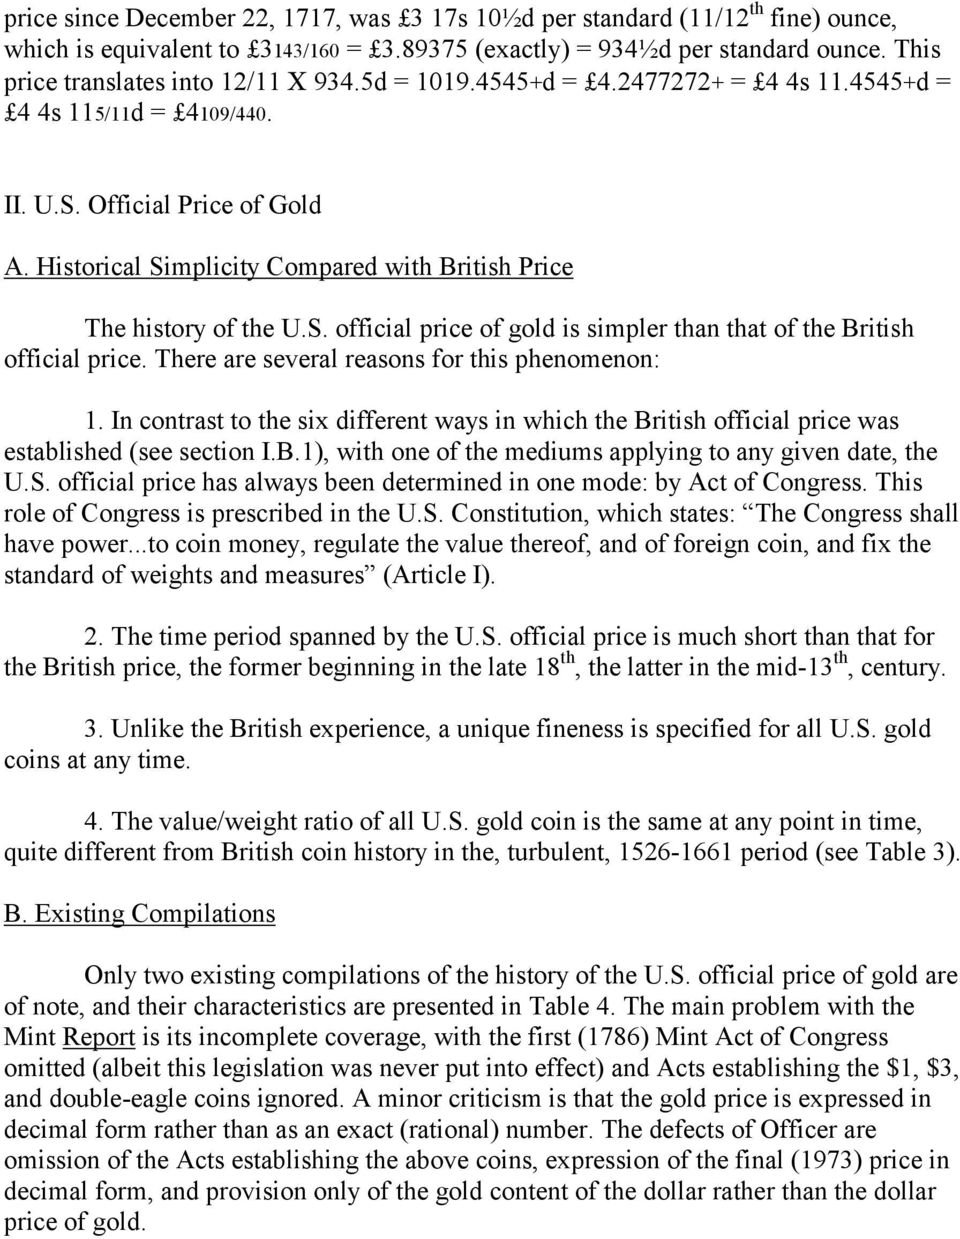 Historical Simplicity Compared with British Price The history of the U.S. official price of gold is simpler than that of the British official price. There are several reasons for this phenomenon: 1.